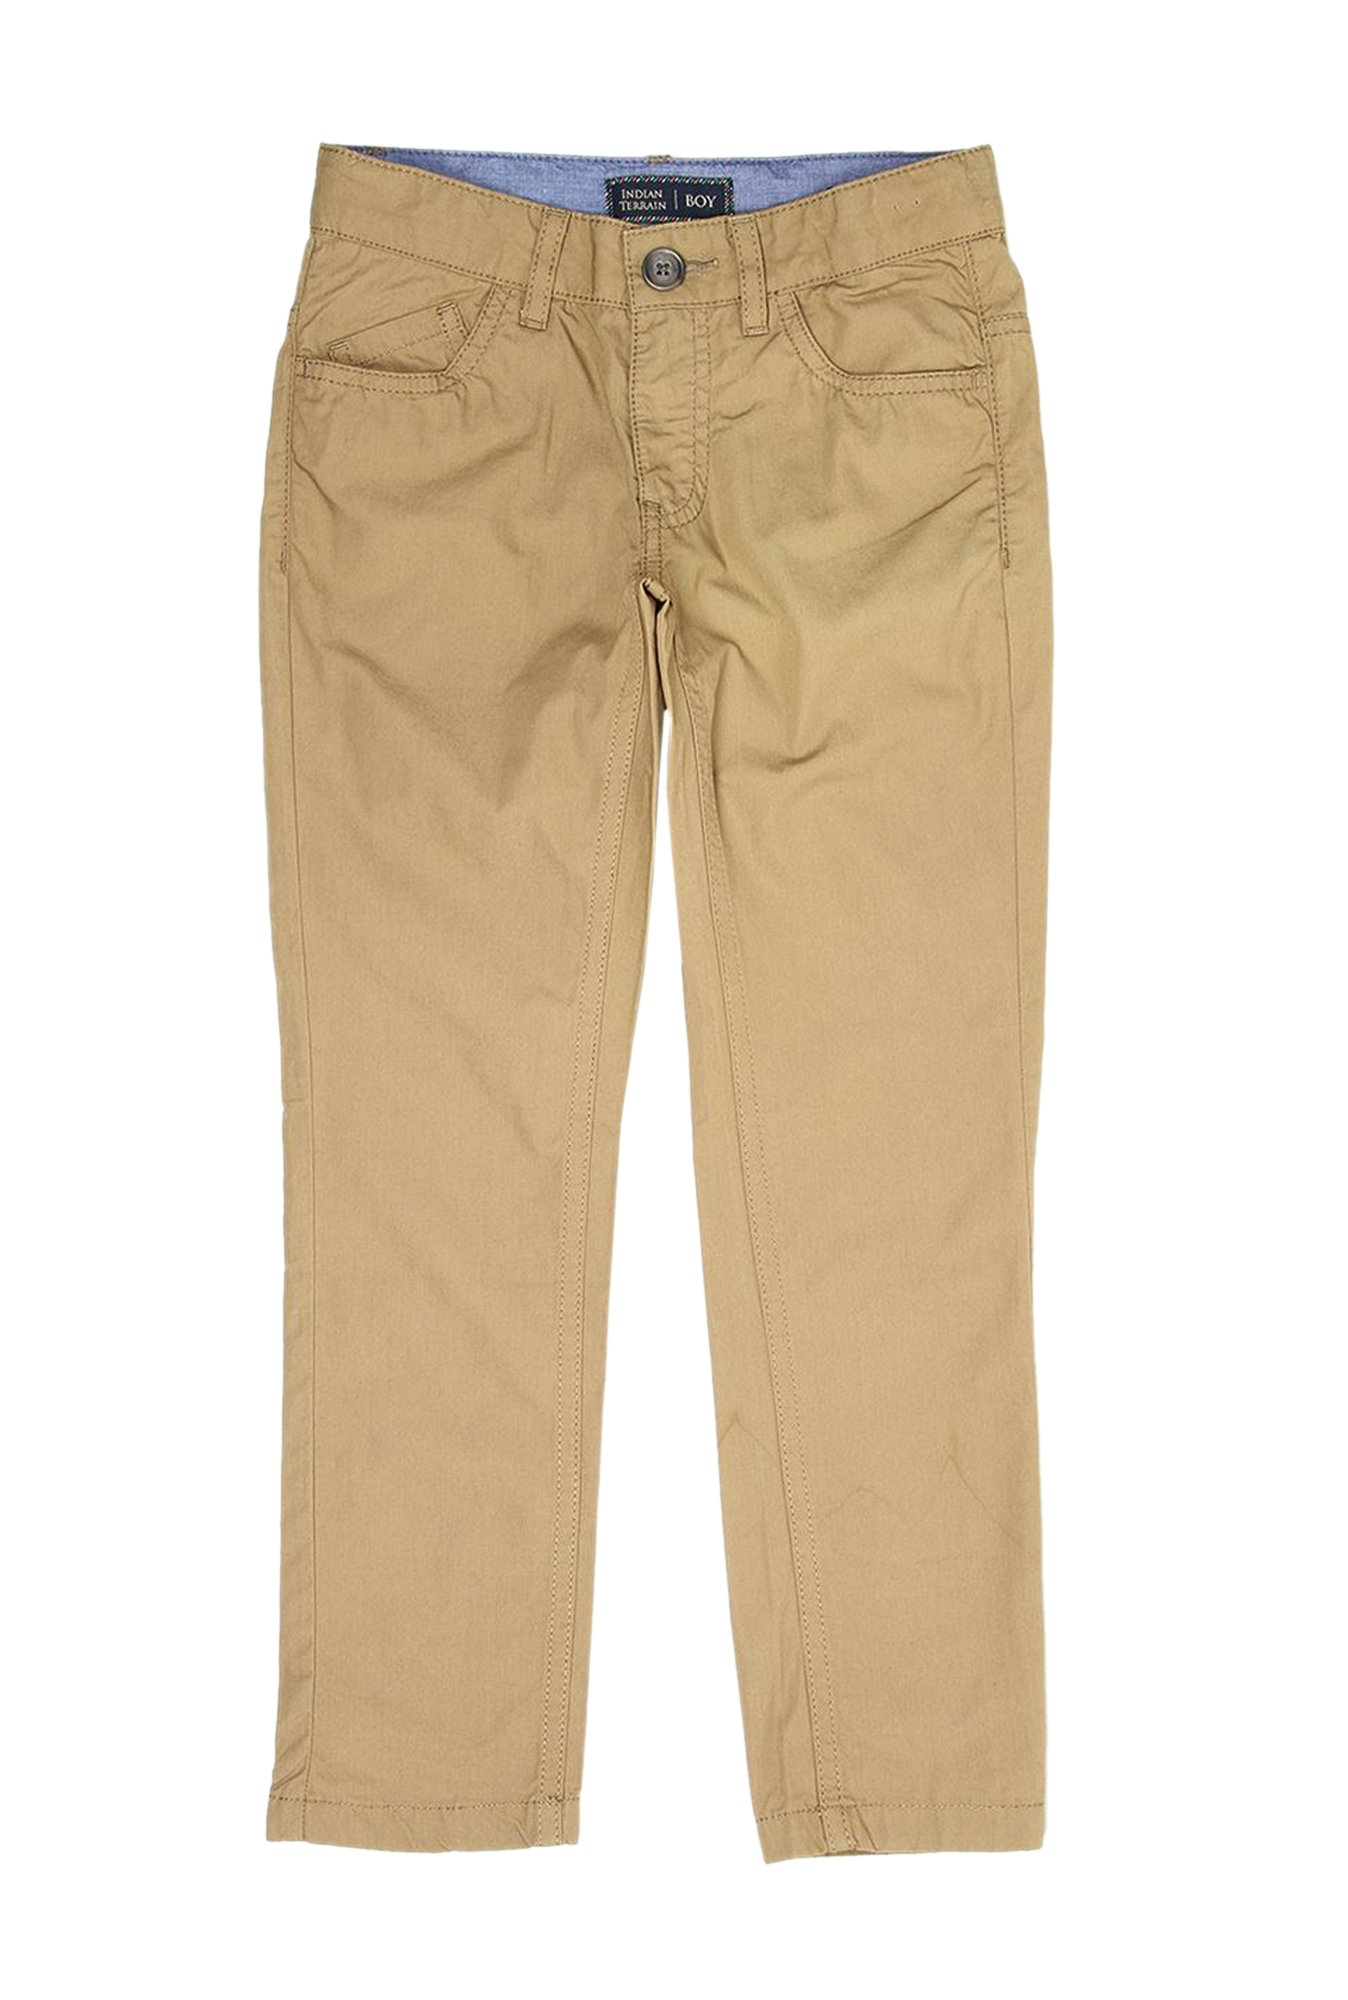 00005cebfc Buy Indian Terrain Kids Khaki Solid Trousers for Boys Clothing Online @  Tata CLiQ